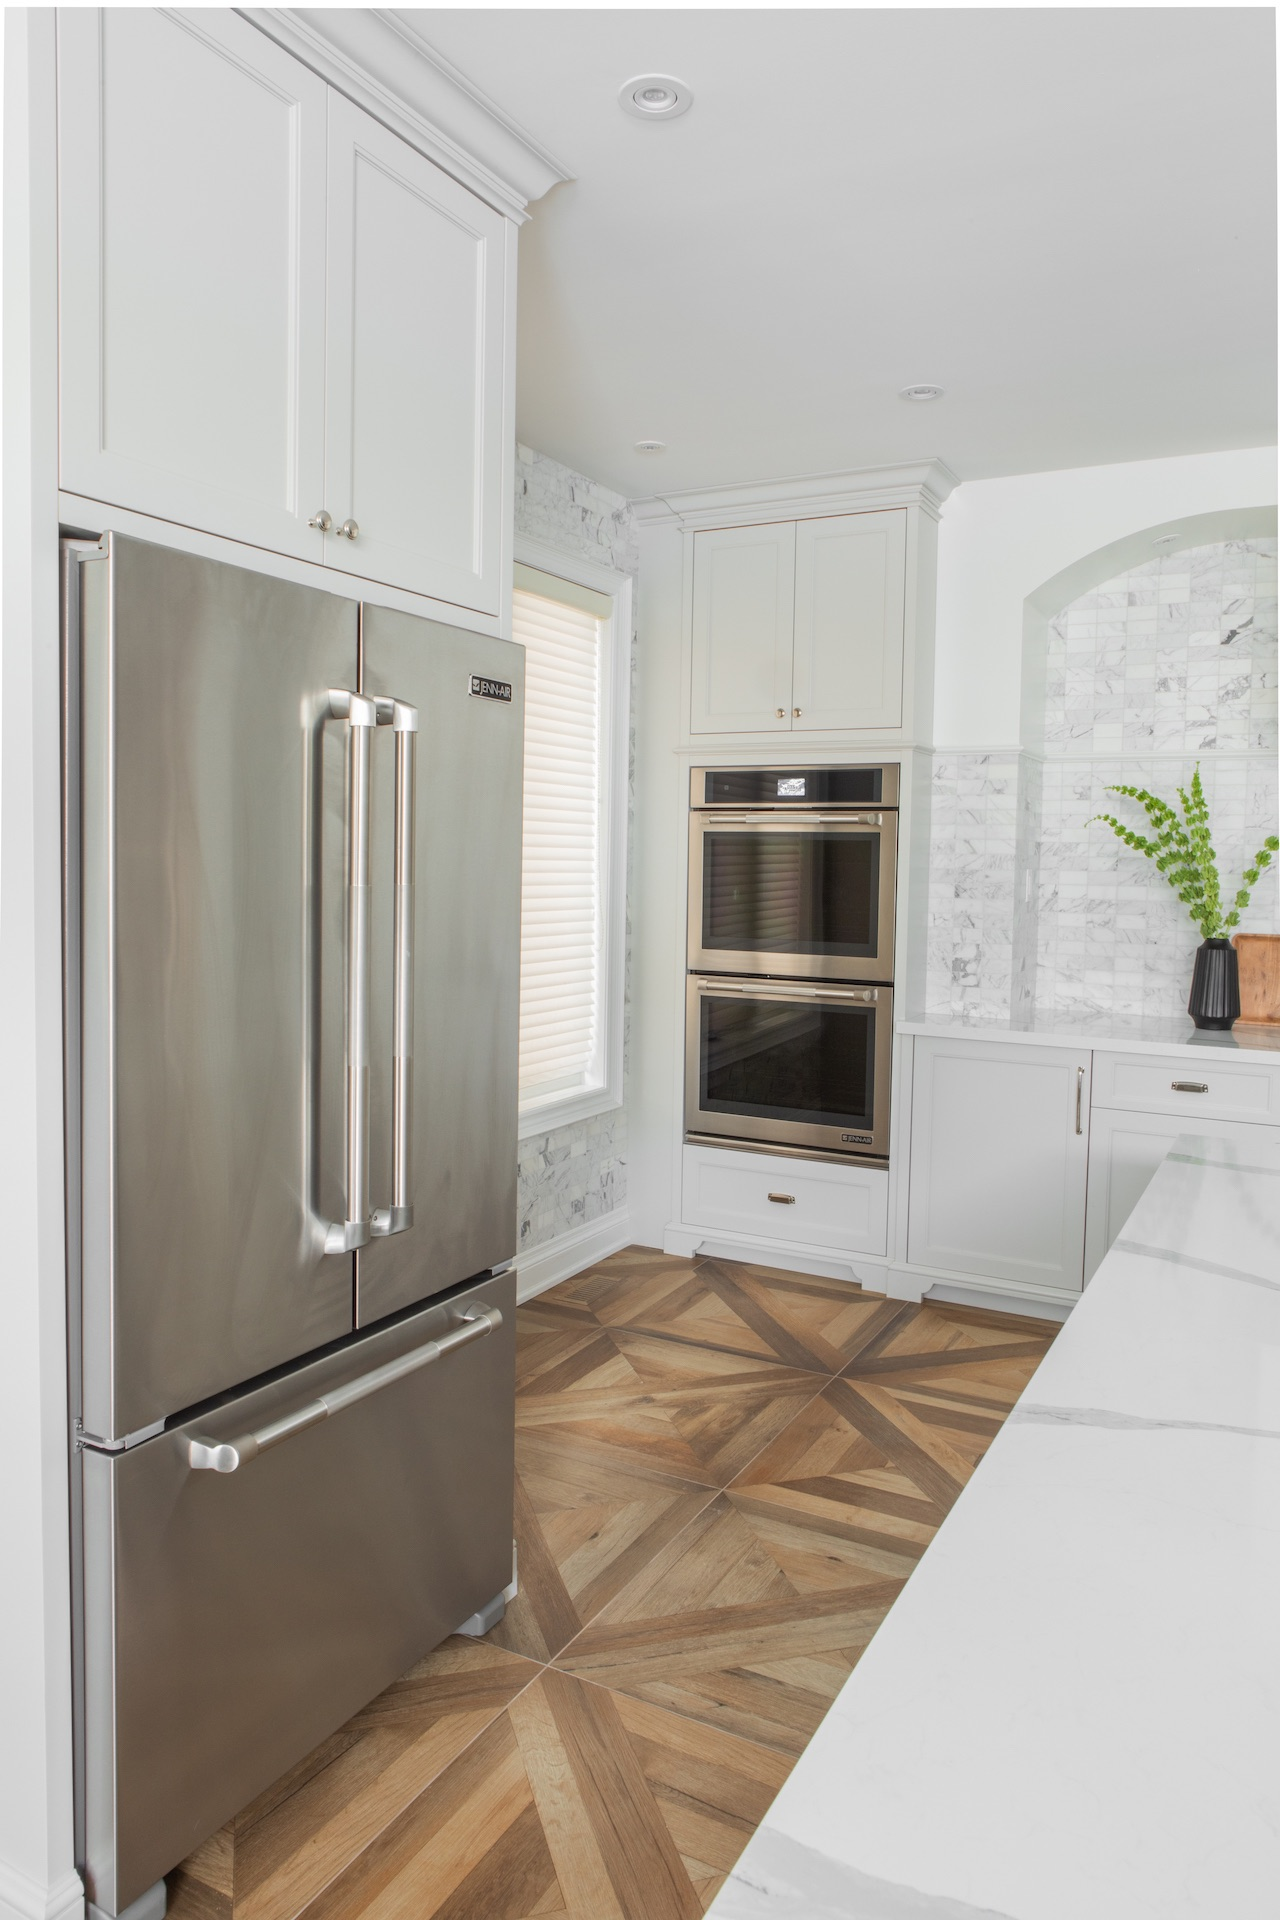 white kitchen with wood floor and silver fridge